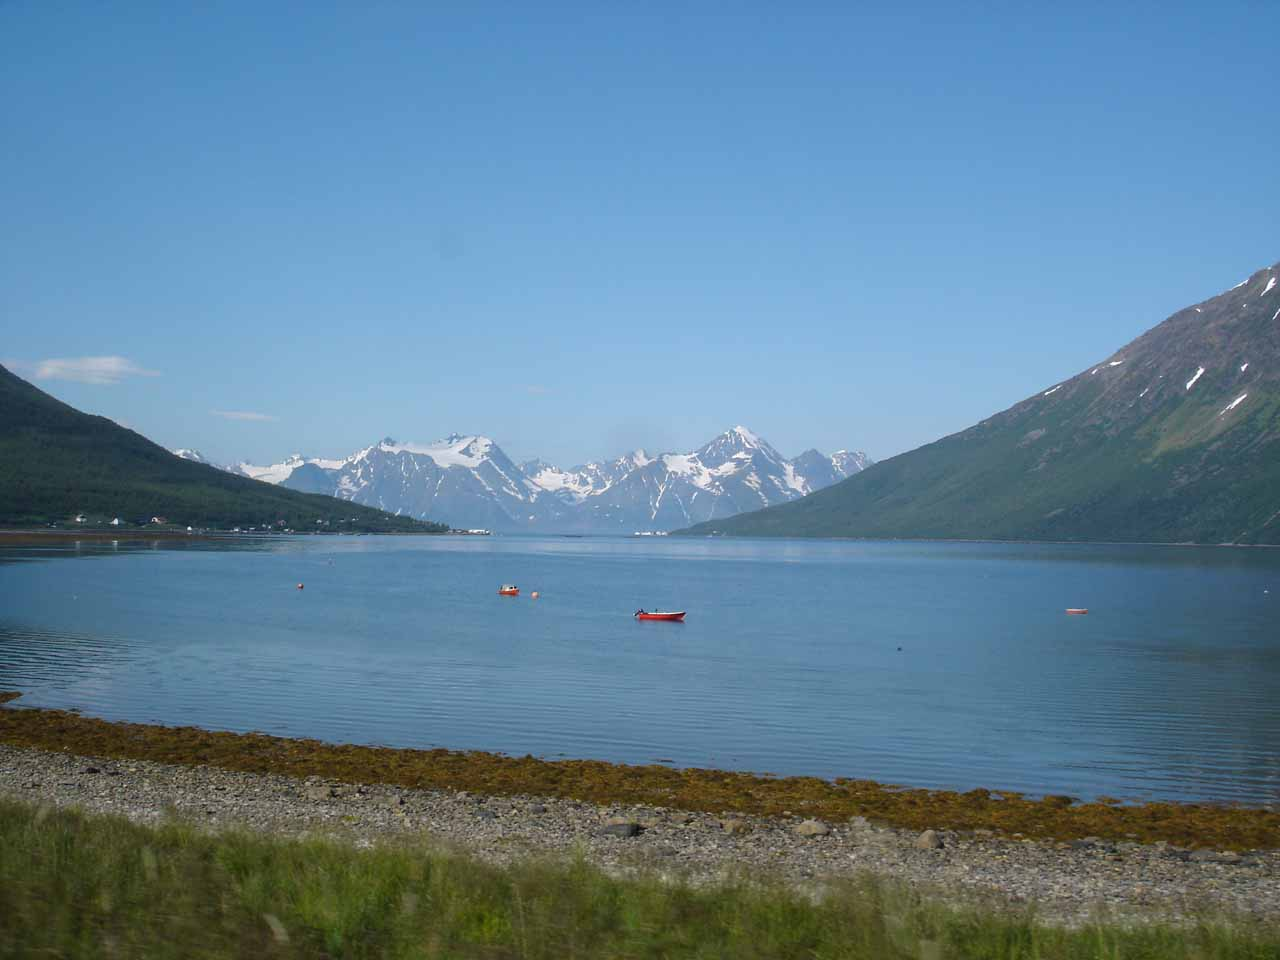 Before reaching Rovijokfossen from Storslett, we drove along the E6 passing through scenic fjords with the Lyngen Alps dramatically rising from sea level